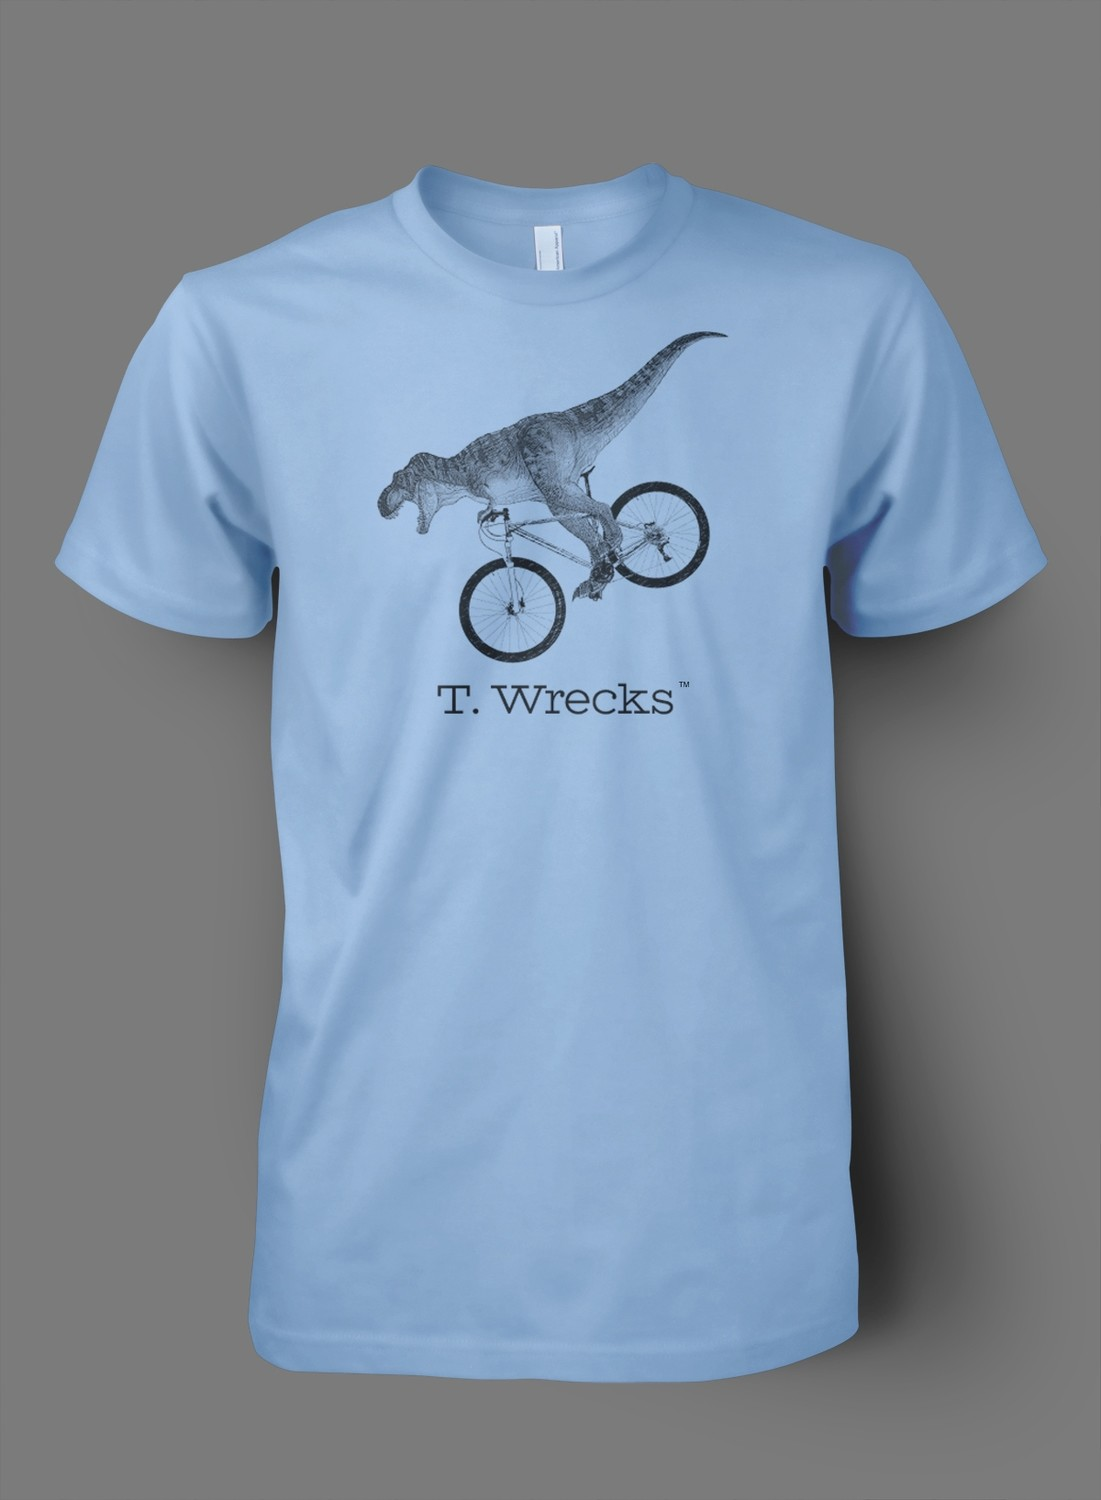 T. Wrecks Tee (Blue)